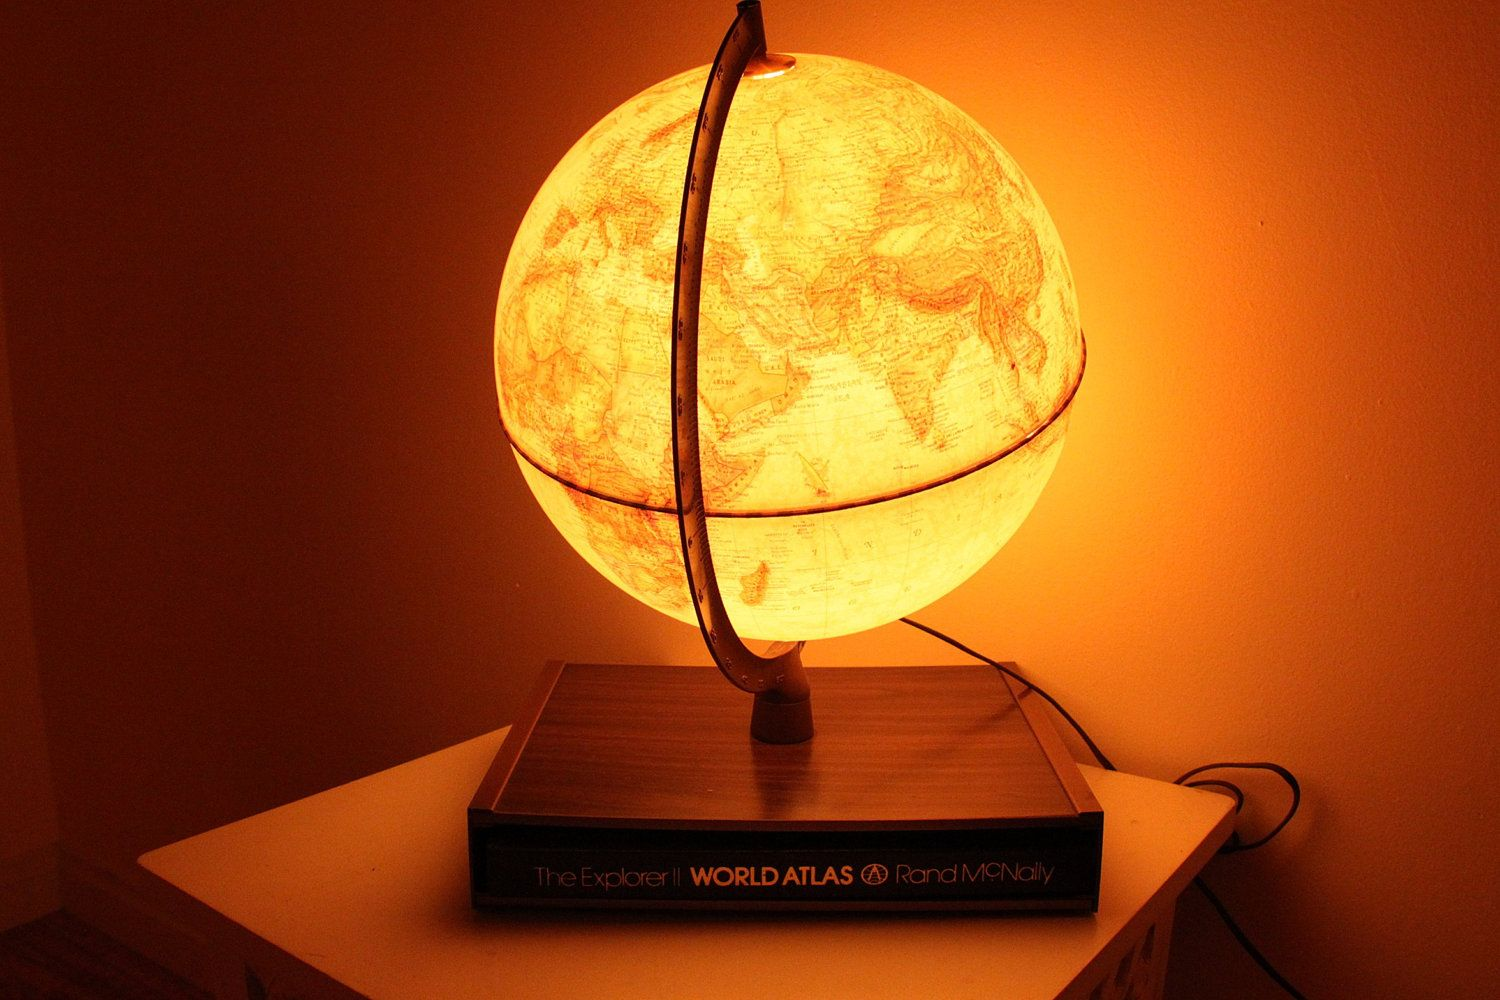 I Ve Been In Love With Light Up Globes Since I Was 10 Globe Lamps Vintage Globe Lamps Vintage Globe